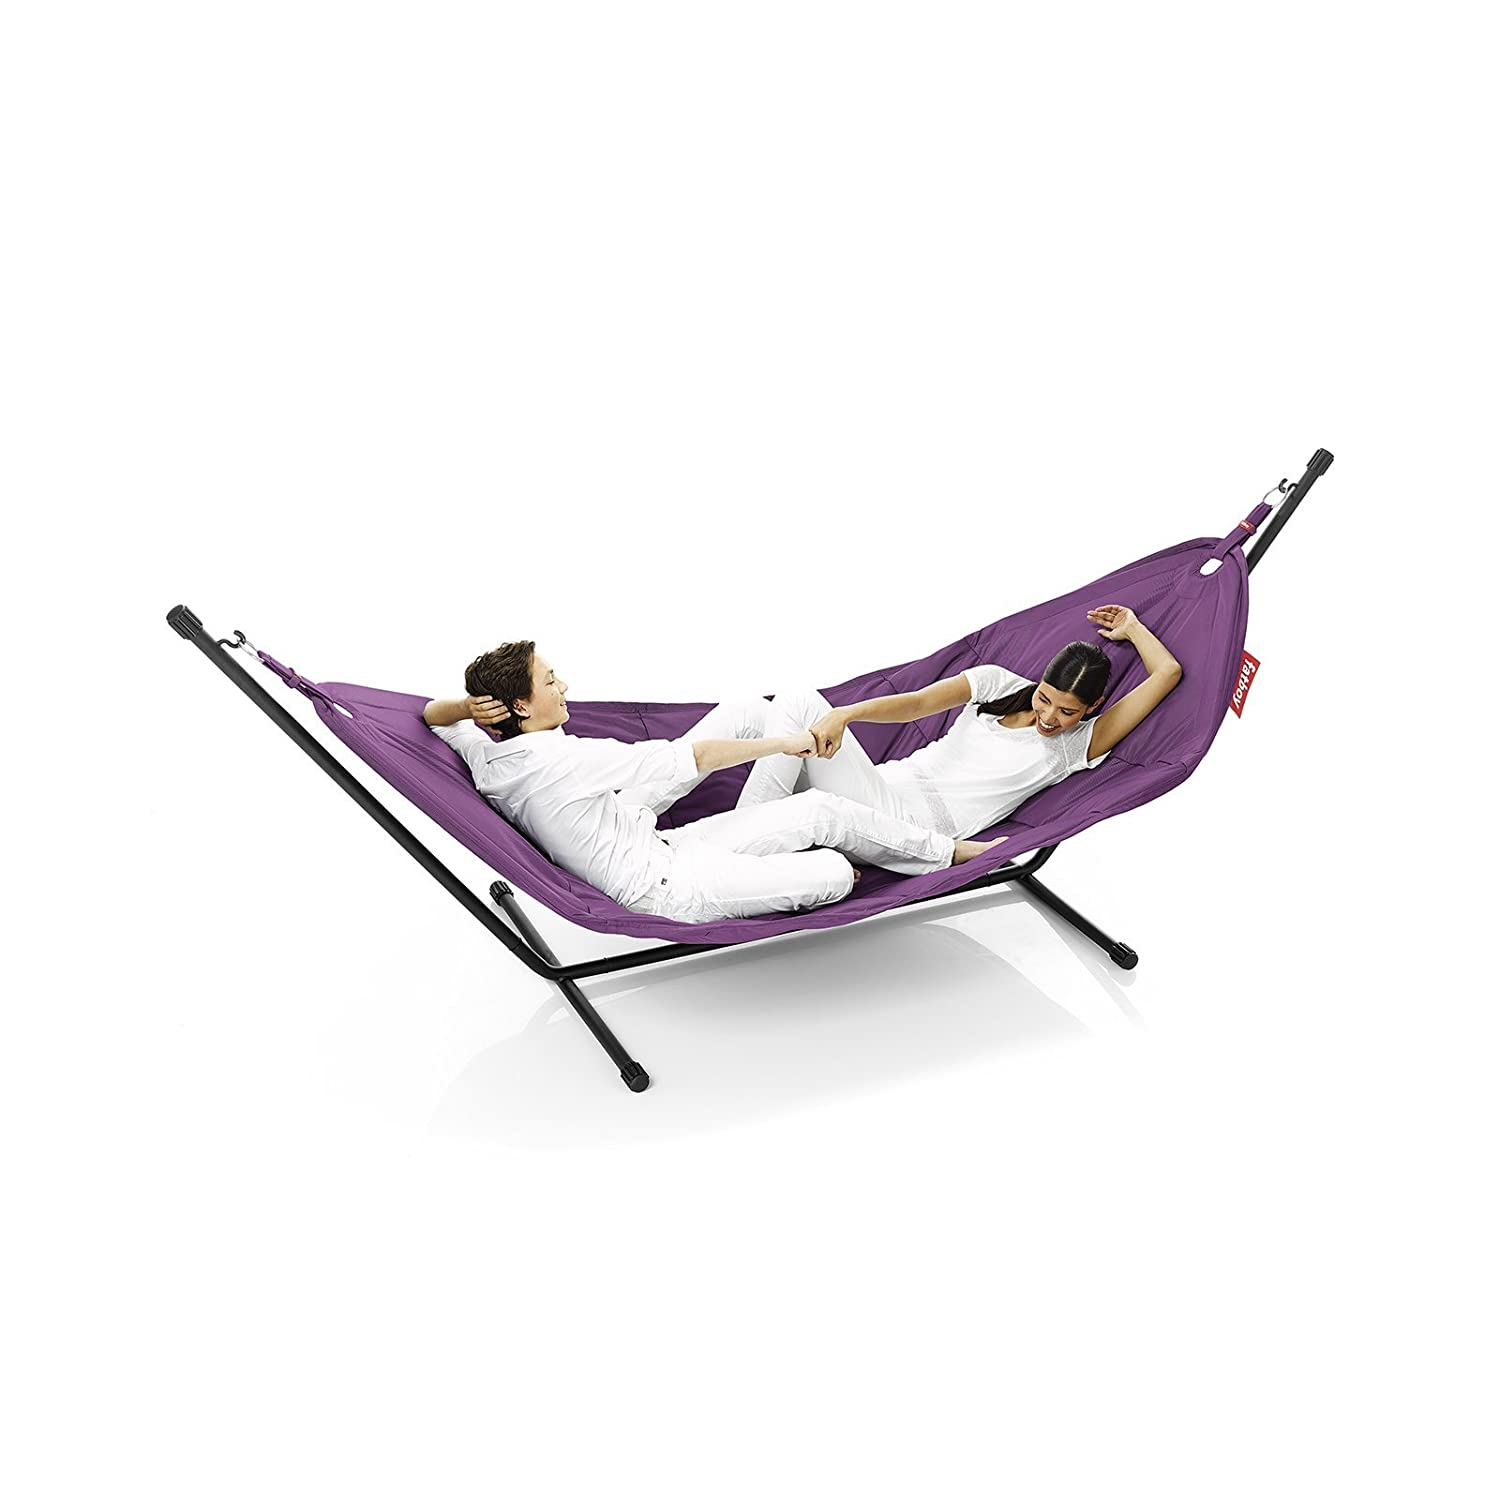 stand accessories evening hammocks fatboy ikea now it hammock with garden in ikeahammock esbest relaxing buy for standard home style shopping outsunny best london